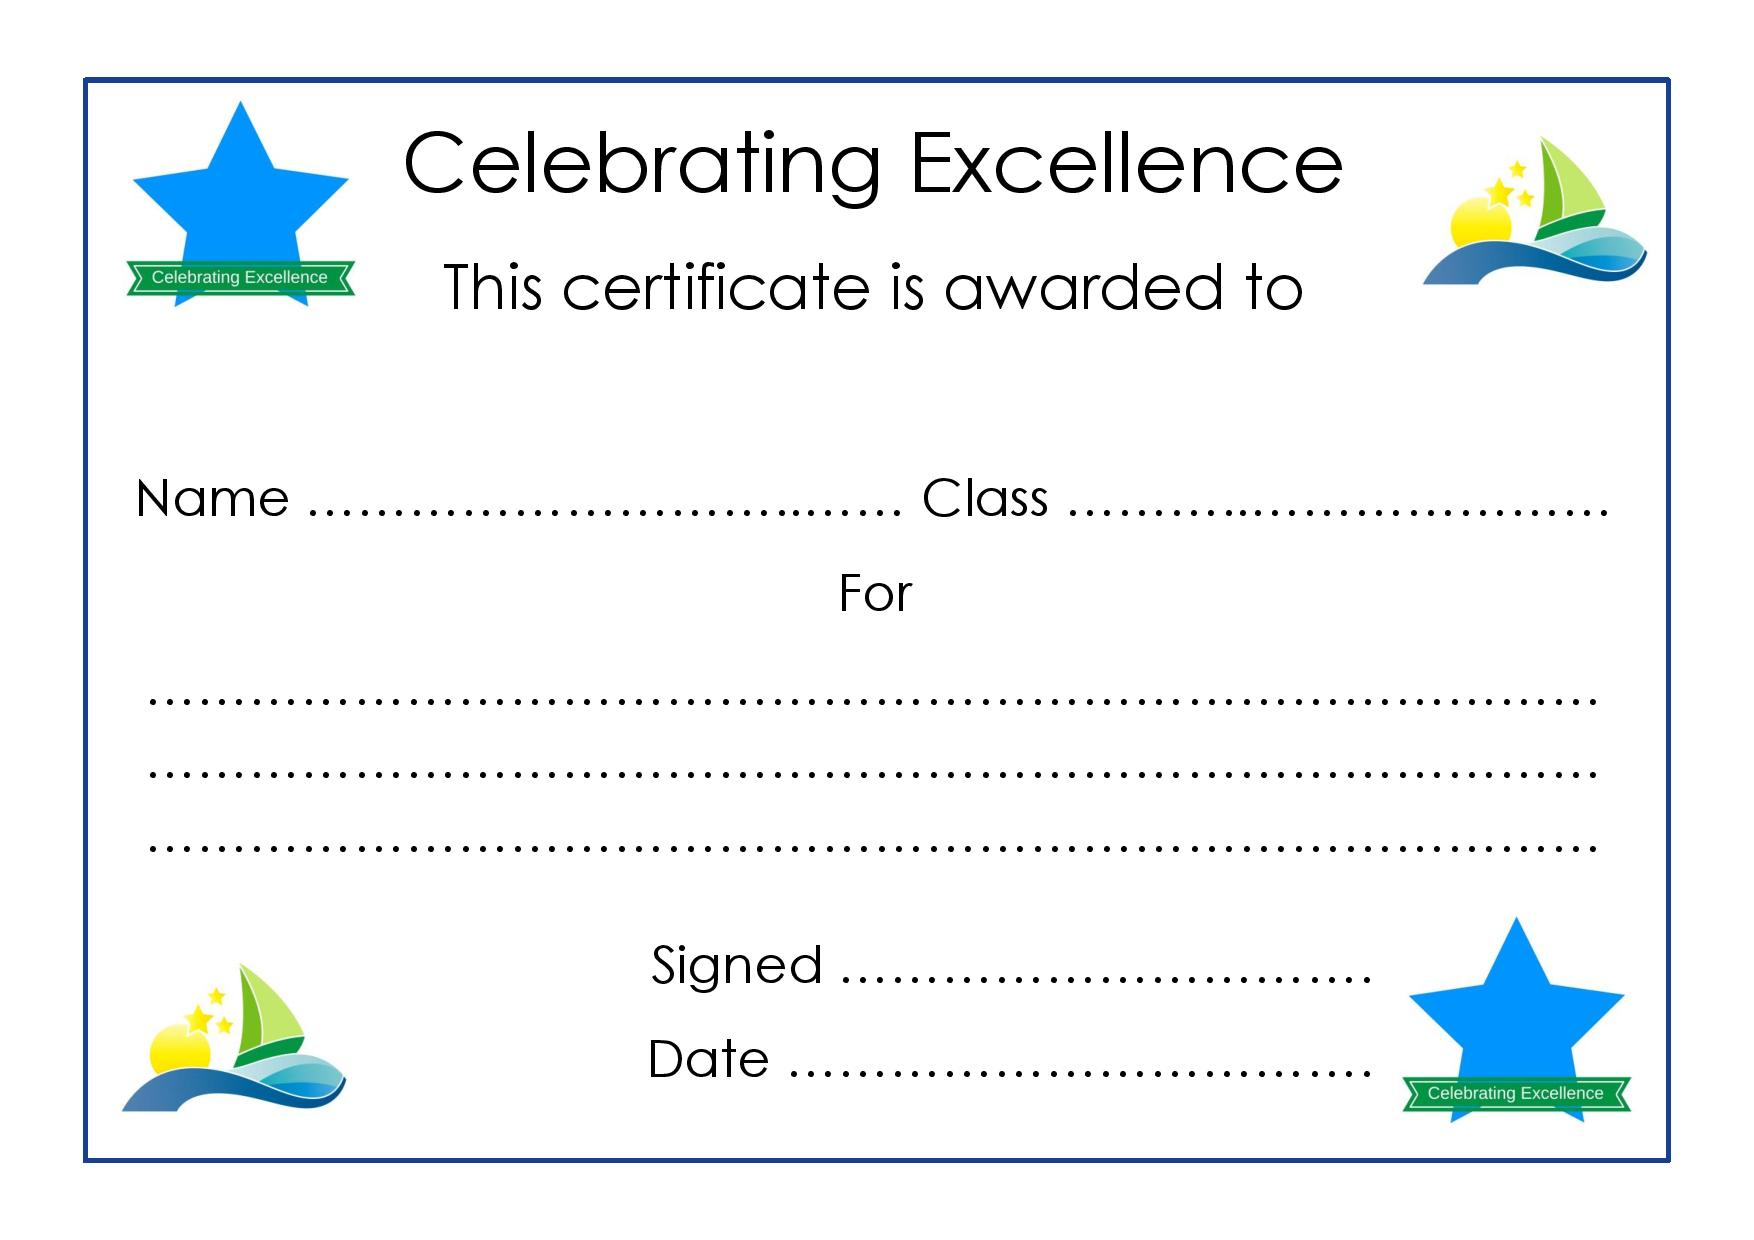 Celebrating Excellence 2017-page-001_1